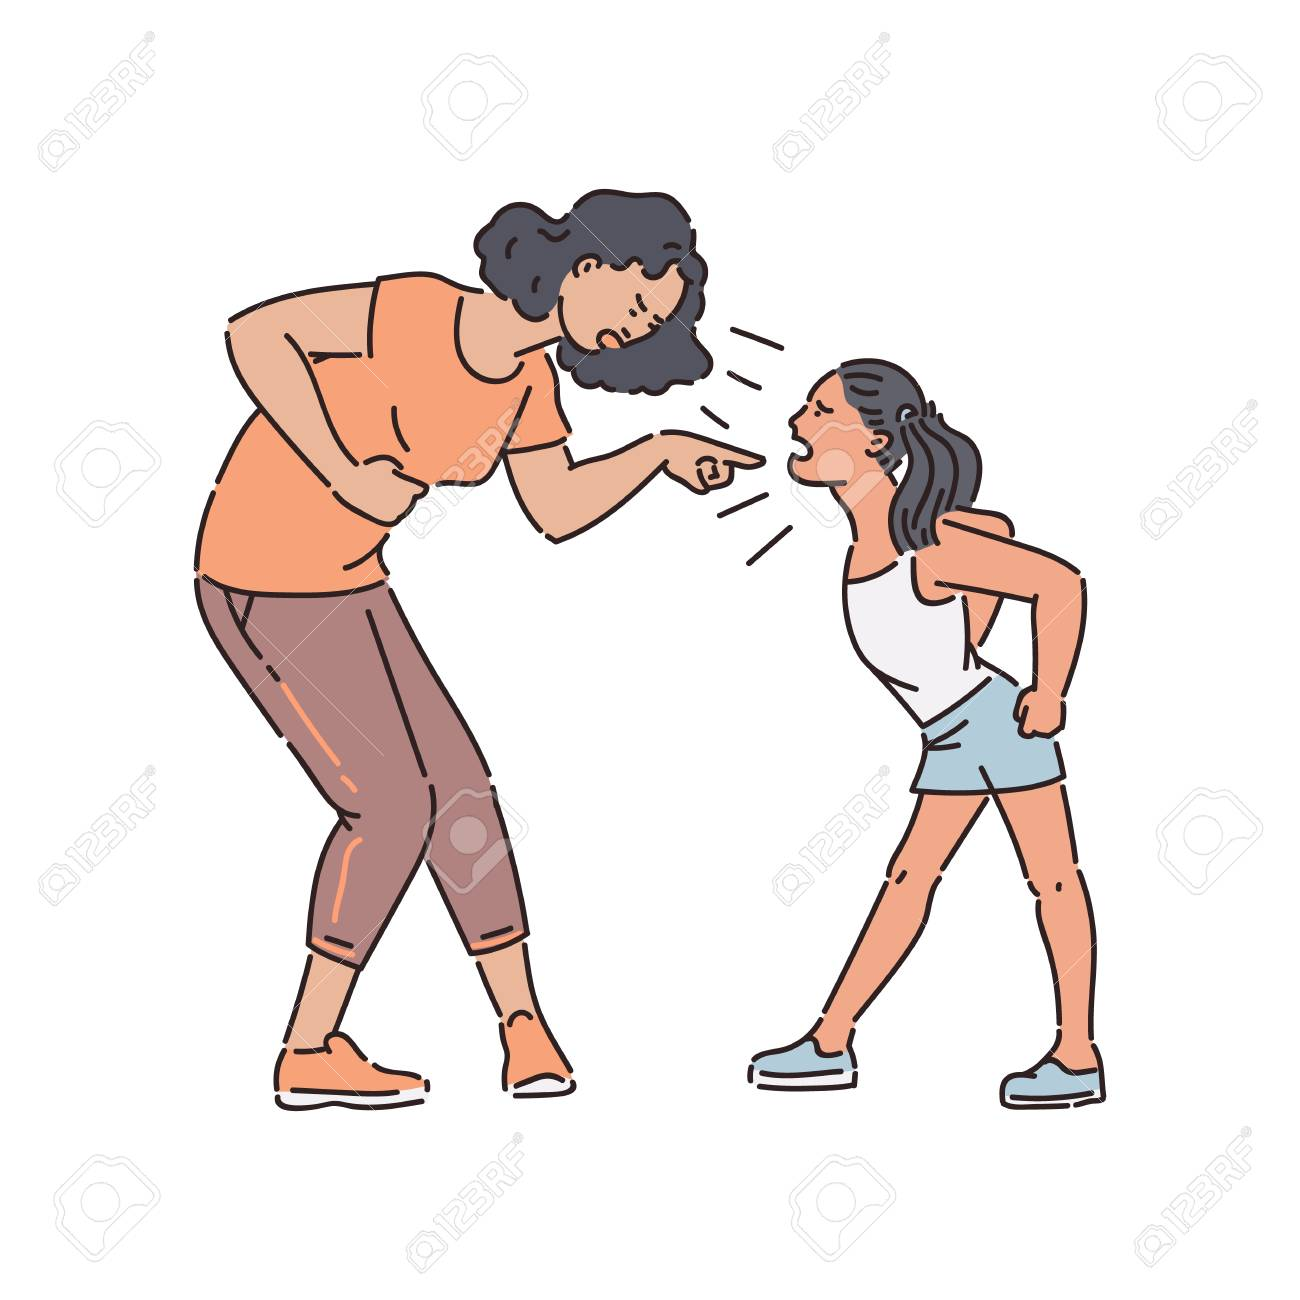 Adult woman and young teen girl stand arguing and shouting sketch style, vector illustration isolated on white background. Mother holding by stomach and scolding aggressive yelling daughter - 128169994